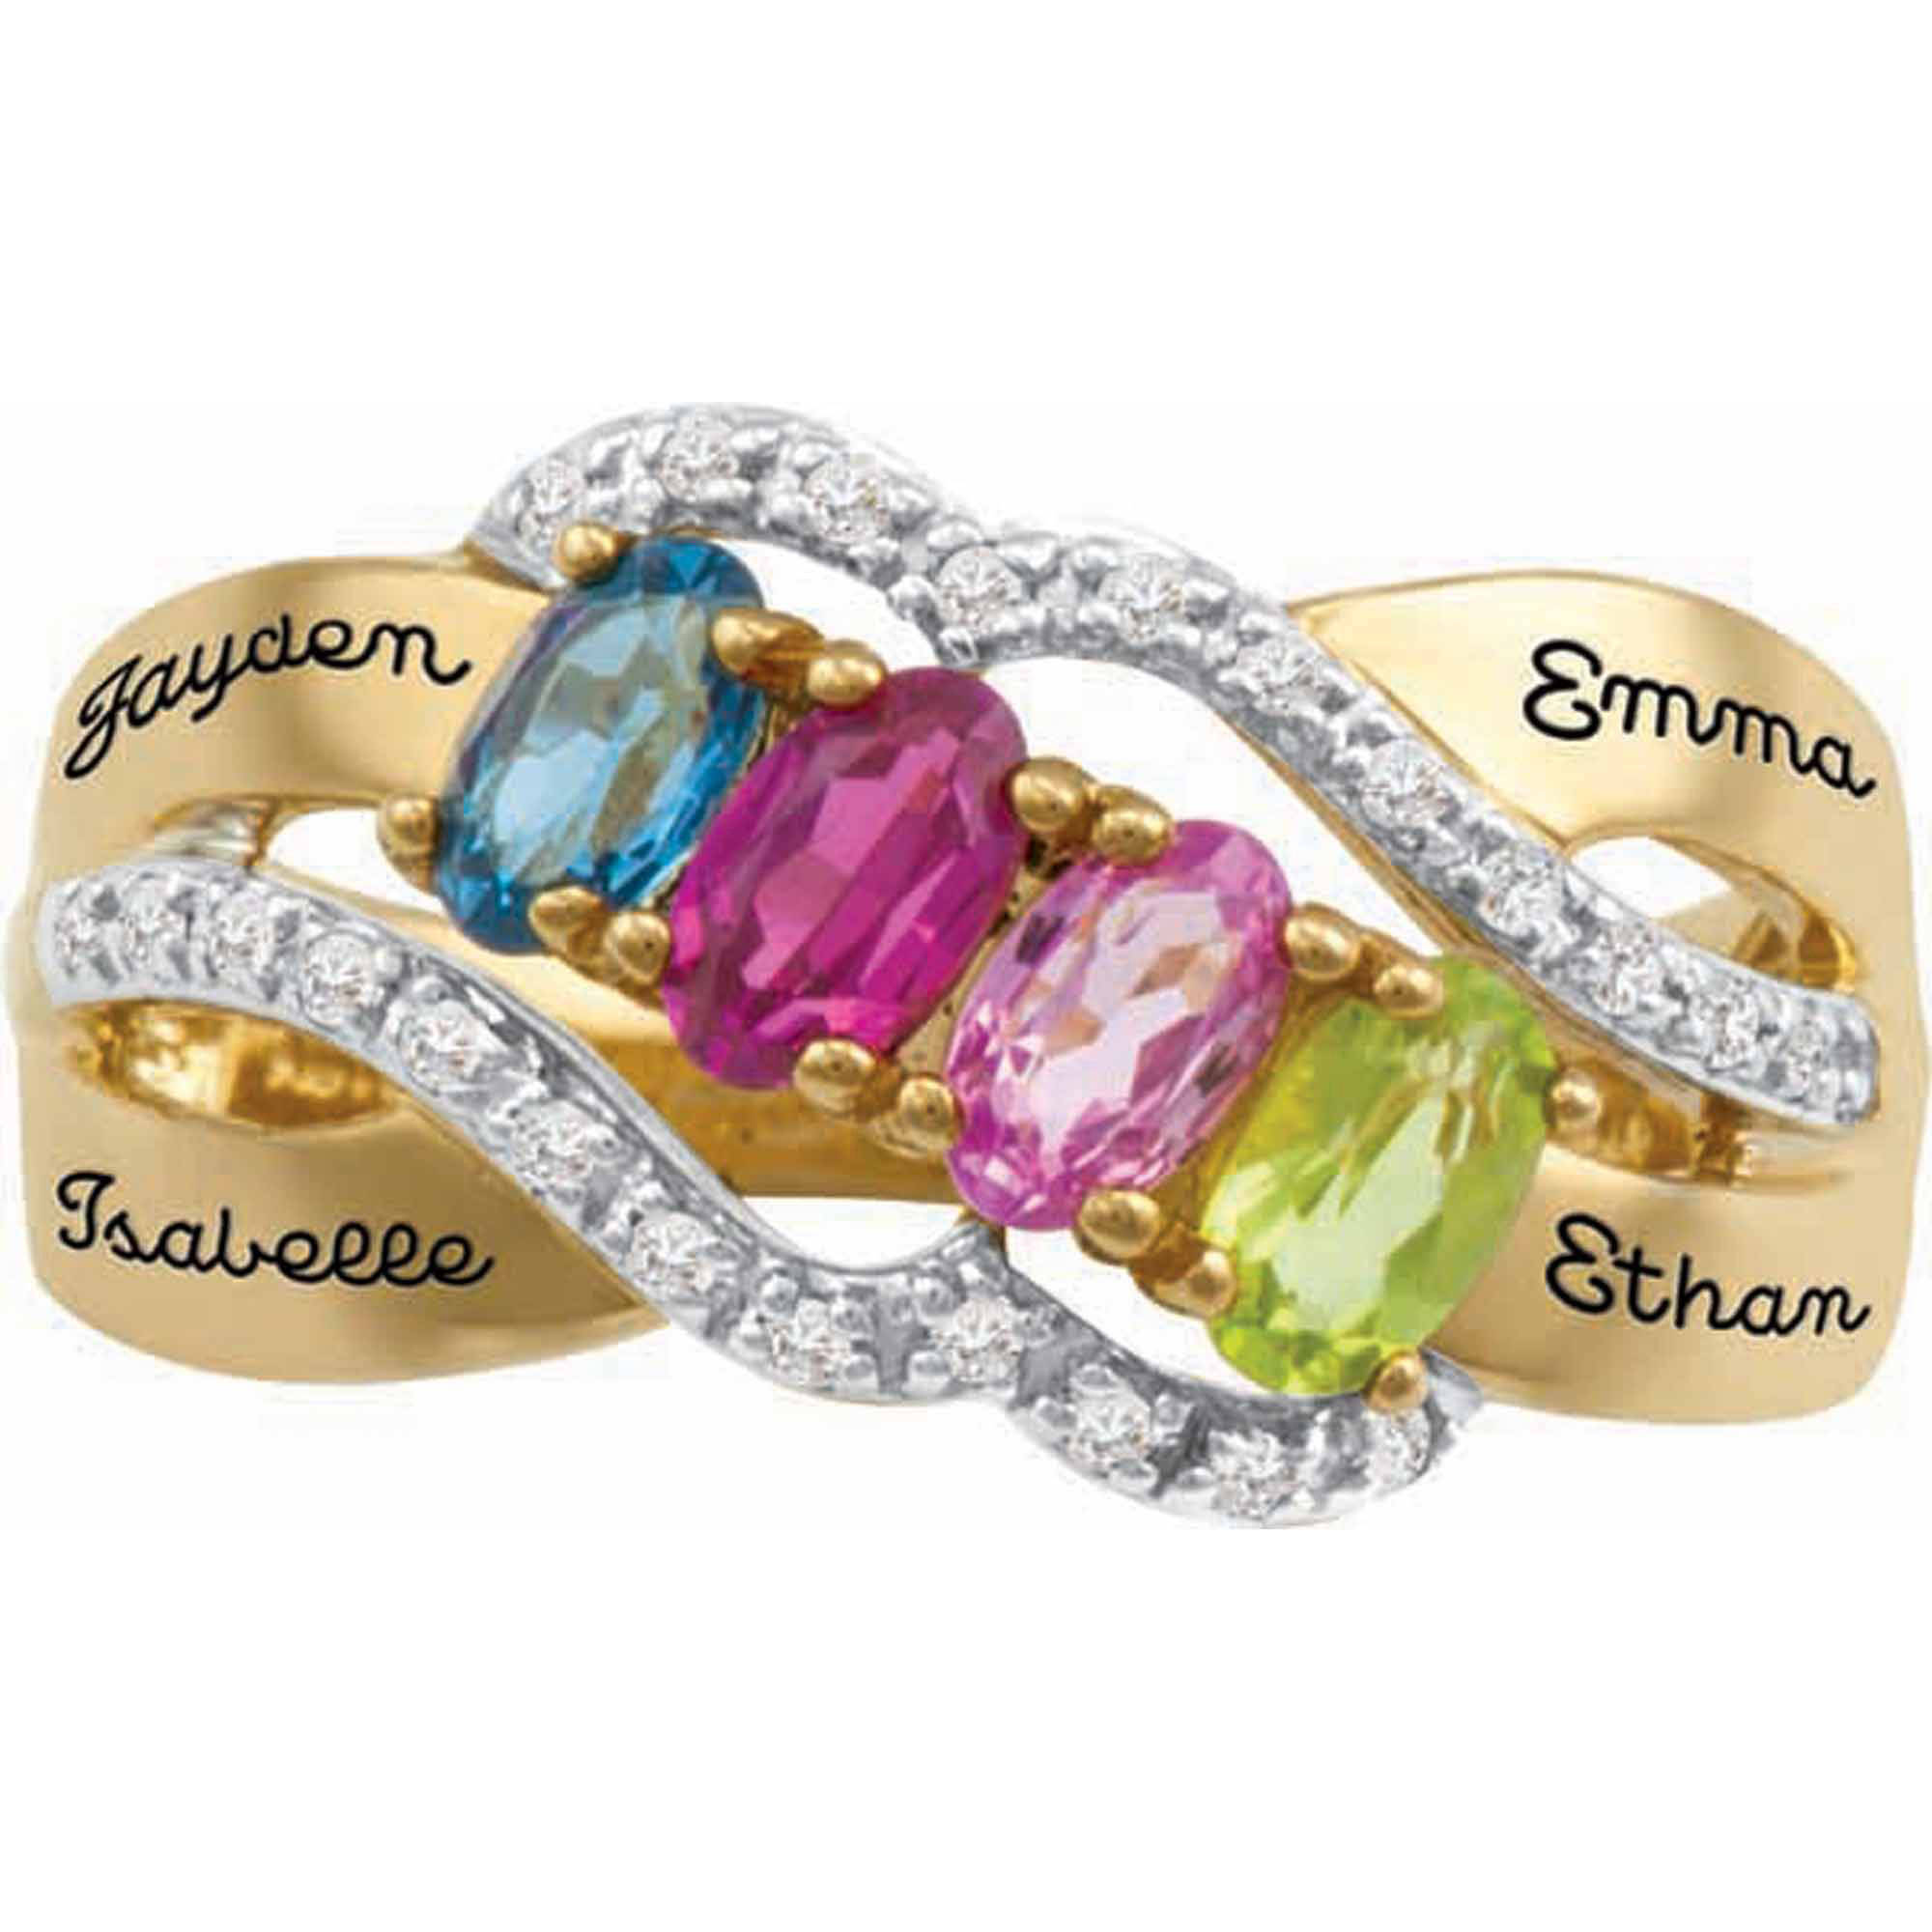 Personalized Family JewelryáBirthstone Fondness Mother's Ring available in Sterling Silver, Gold and White Gold